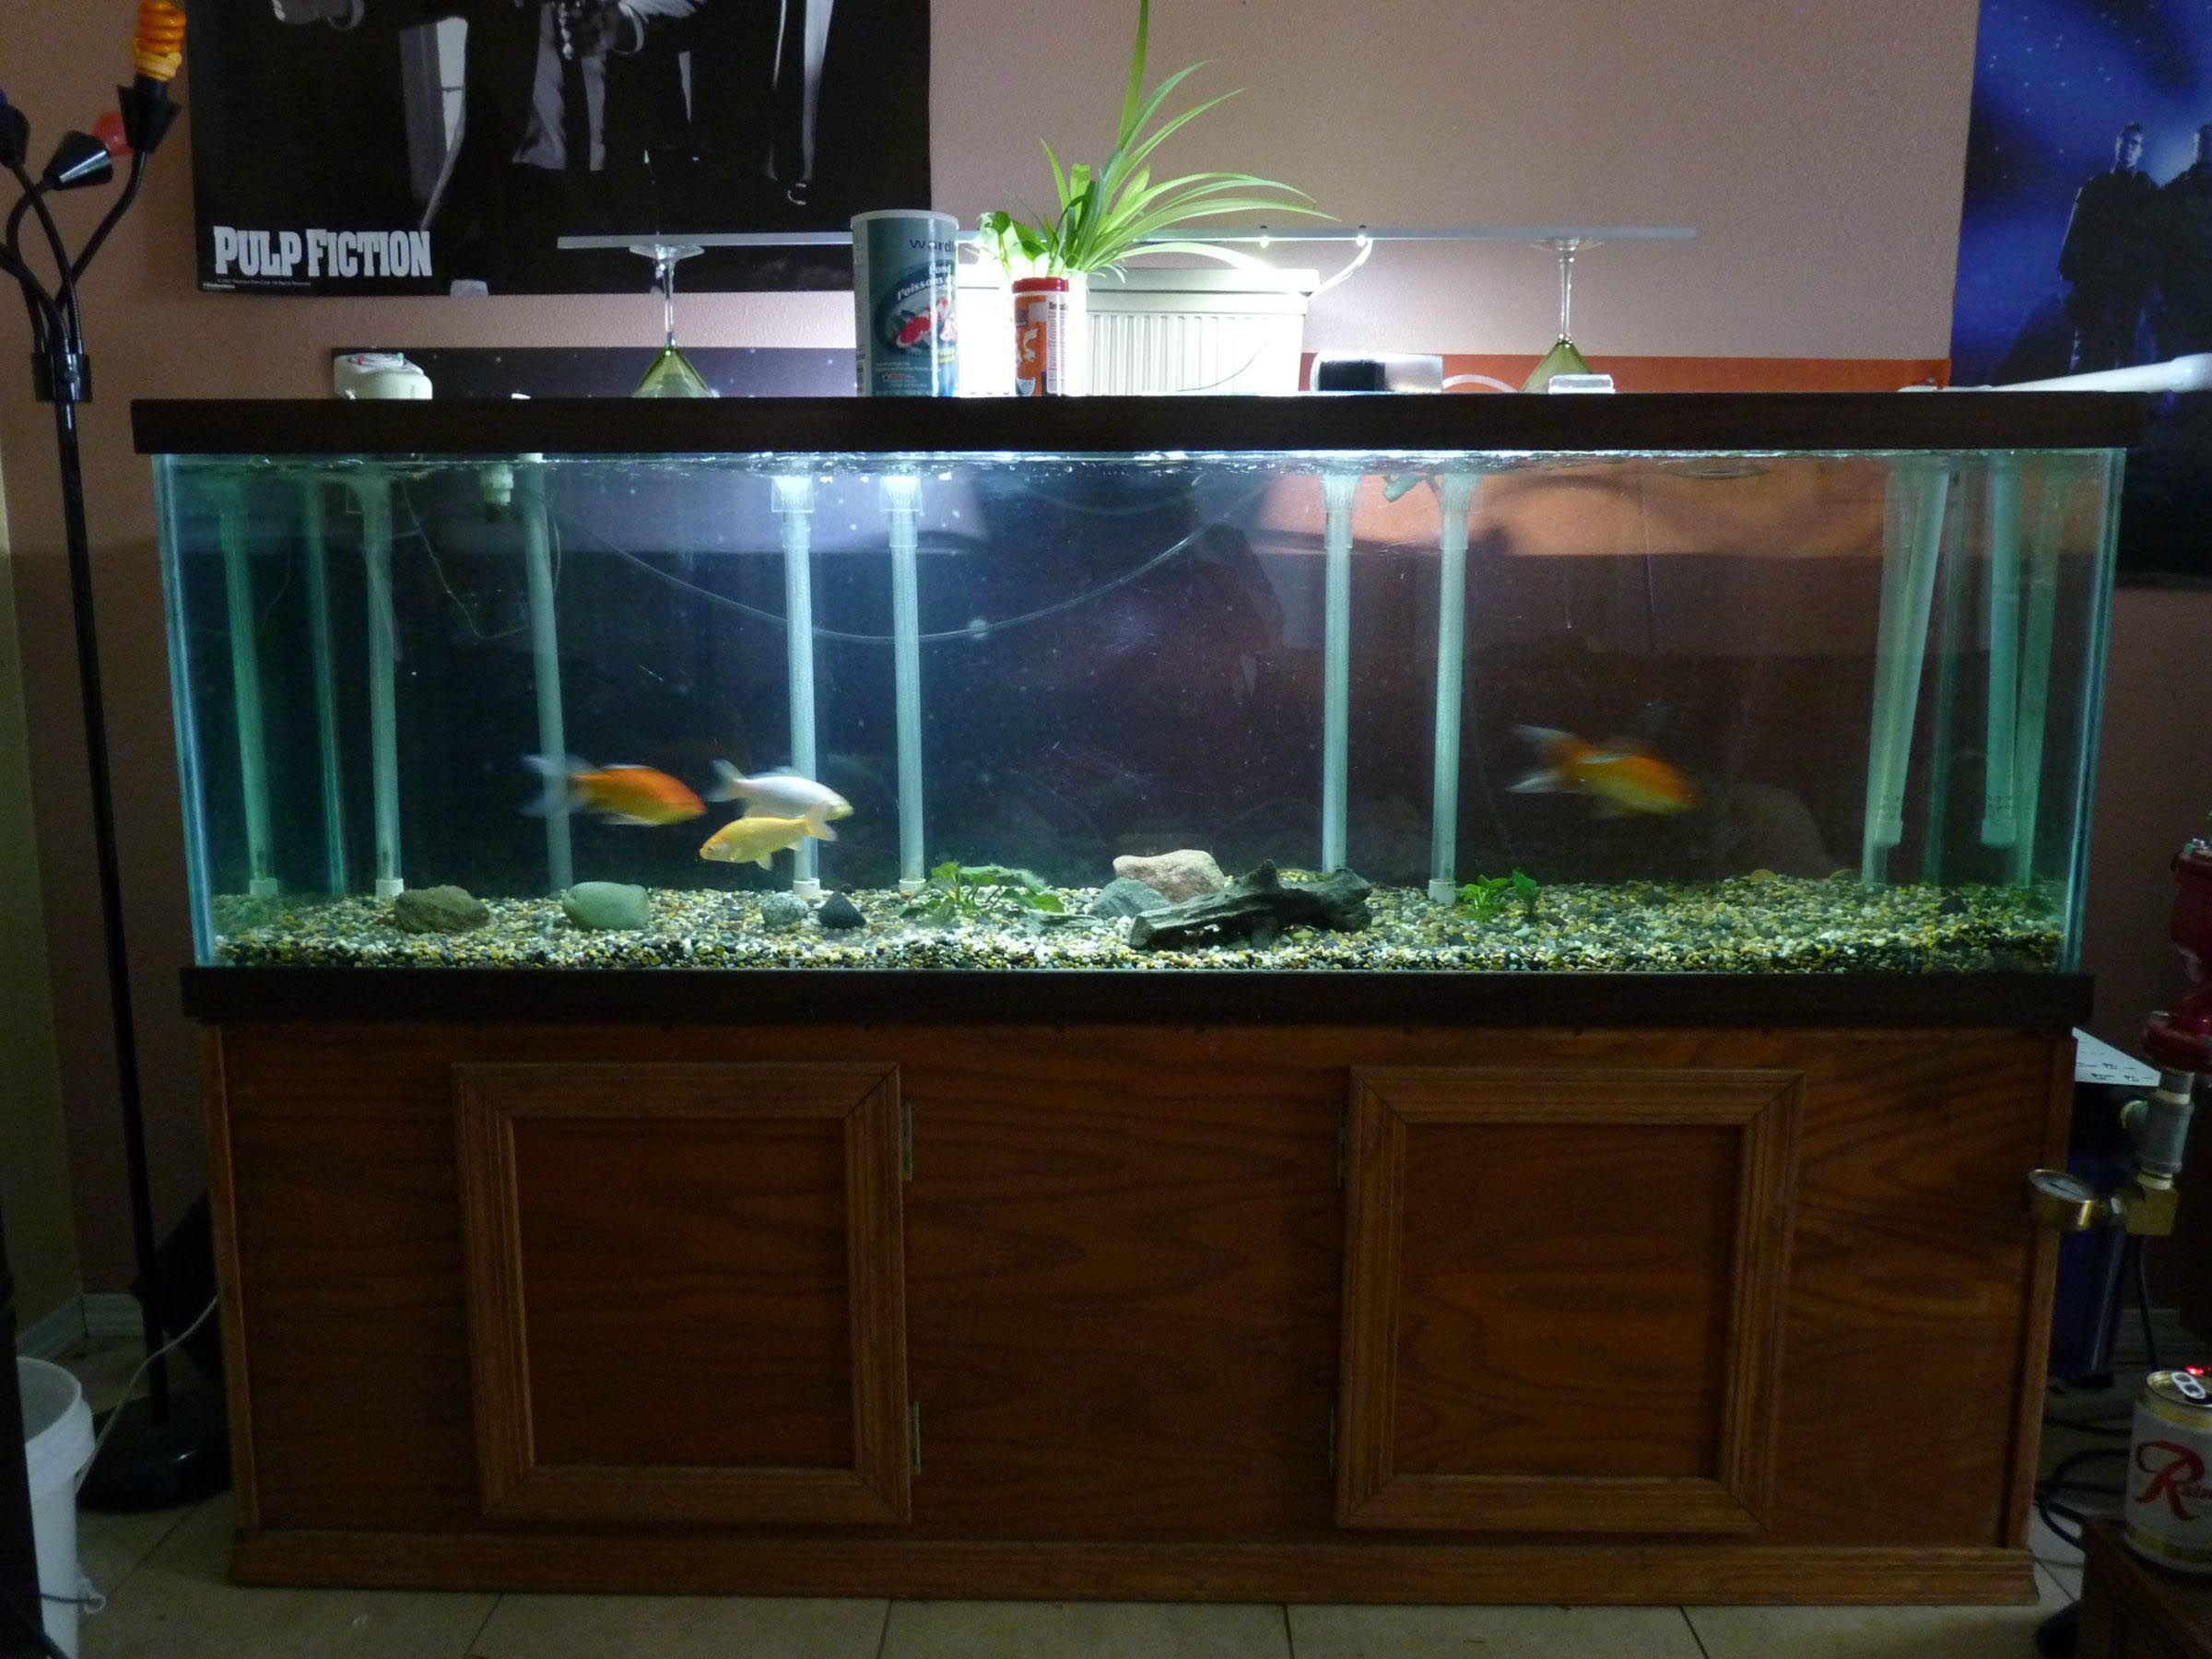 100 gallons aquarium size aquarium ideas pinterest for 50 gallon fish tank dimensions